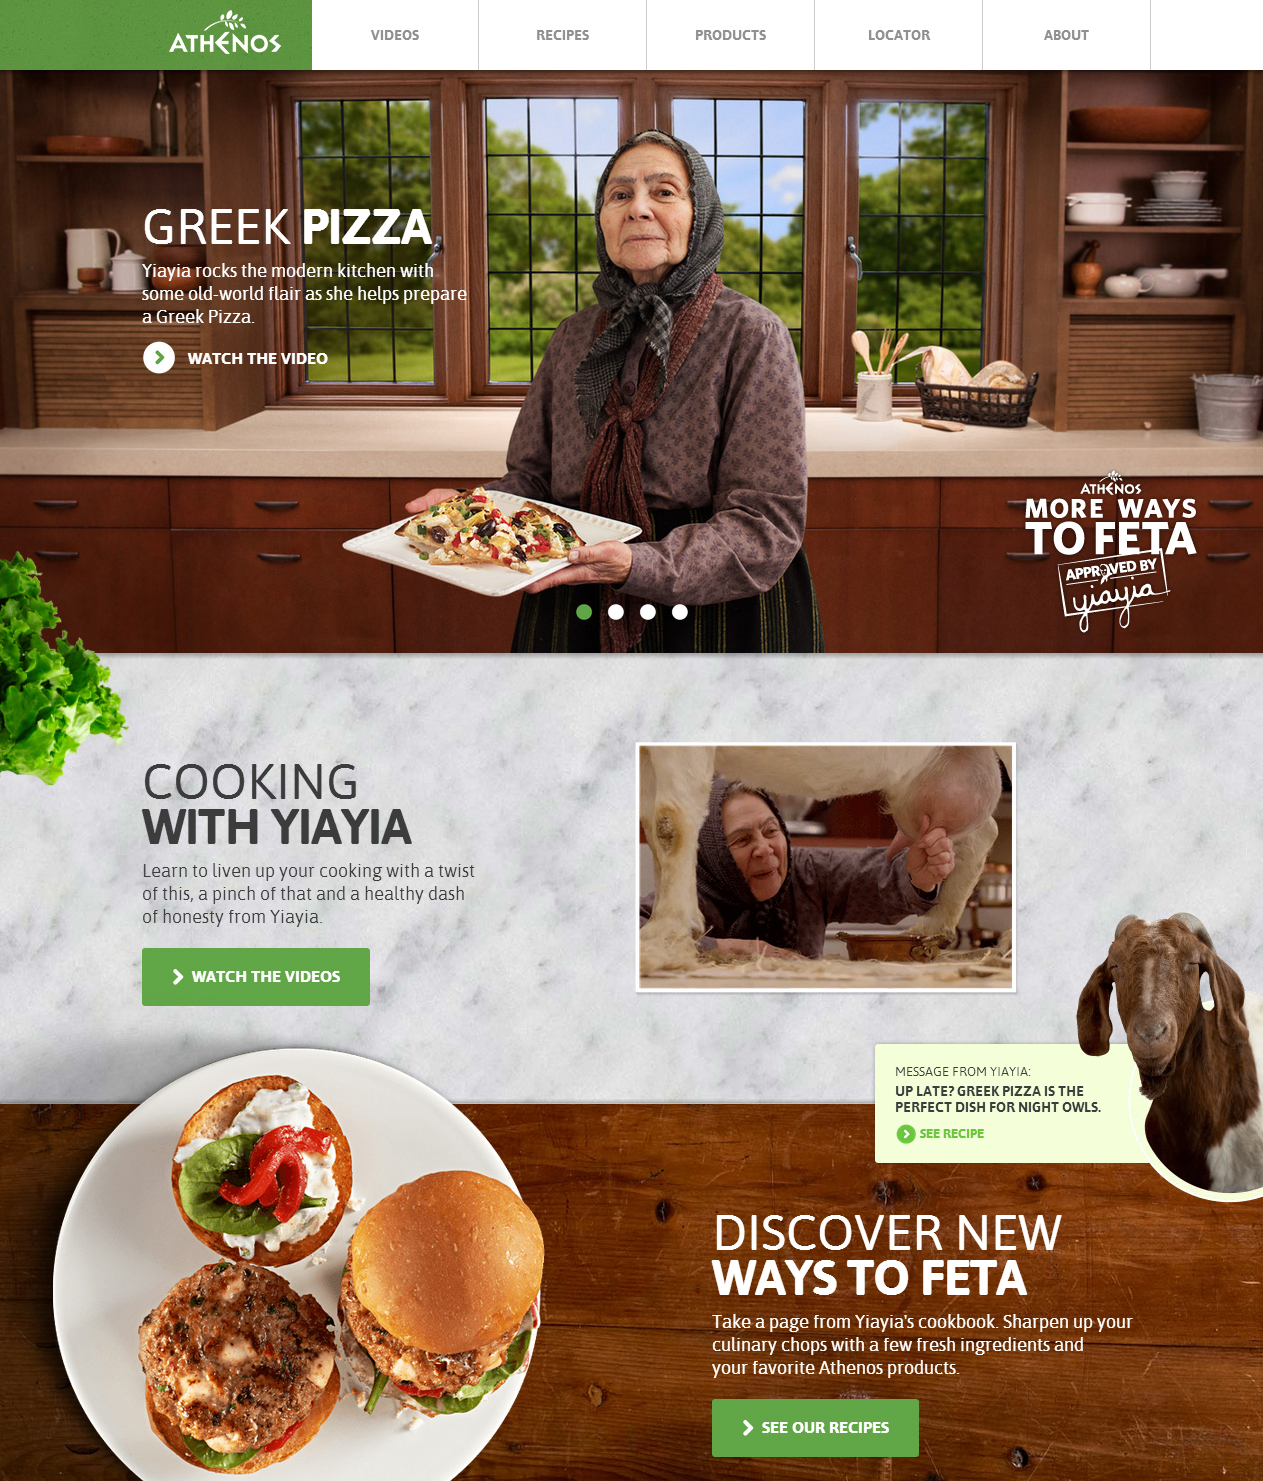 Athenos-Made-the-Greek-Way_s